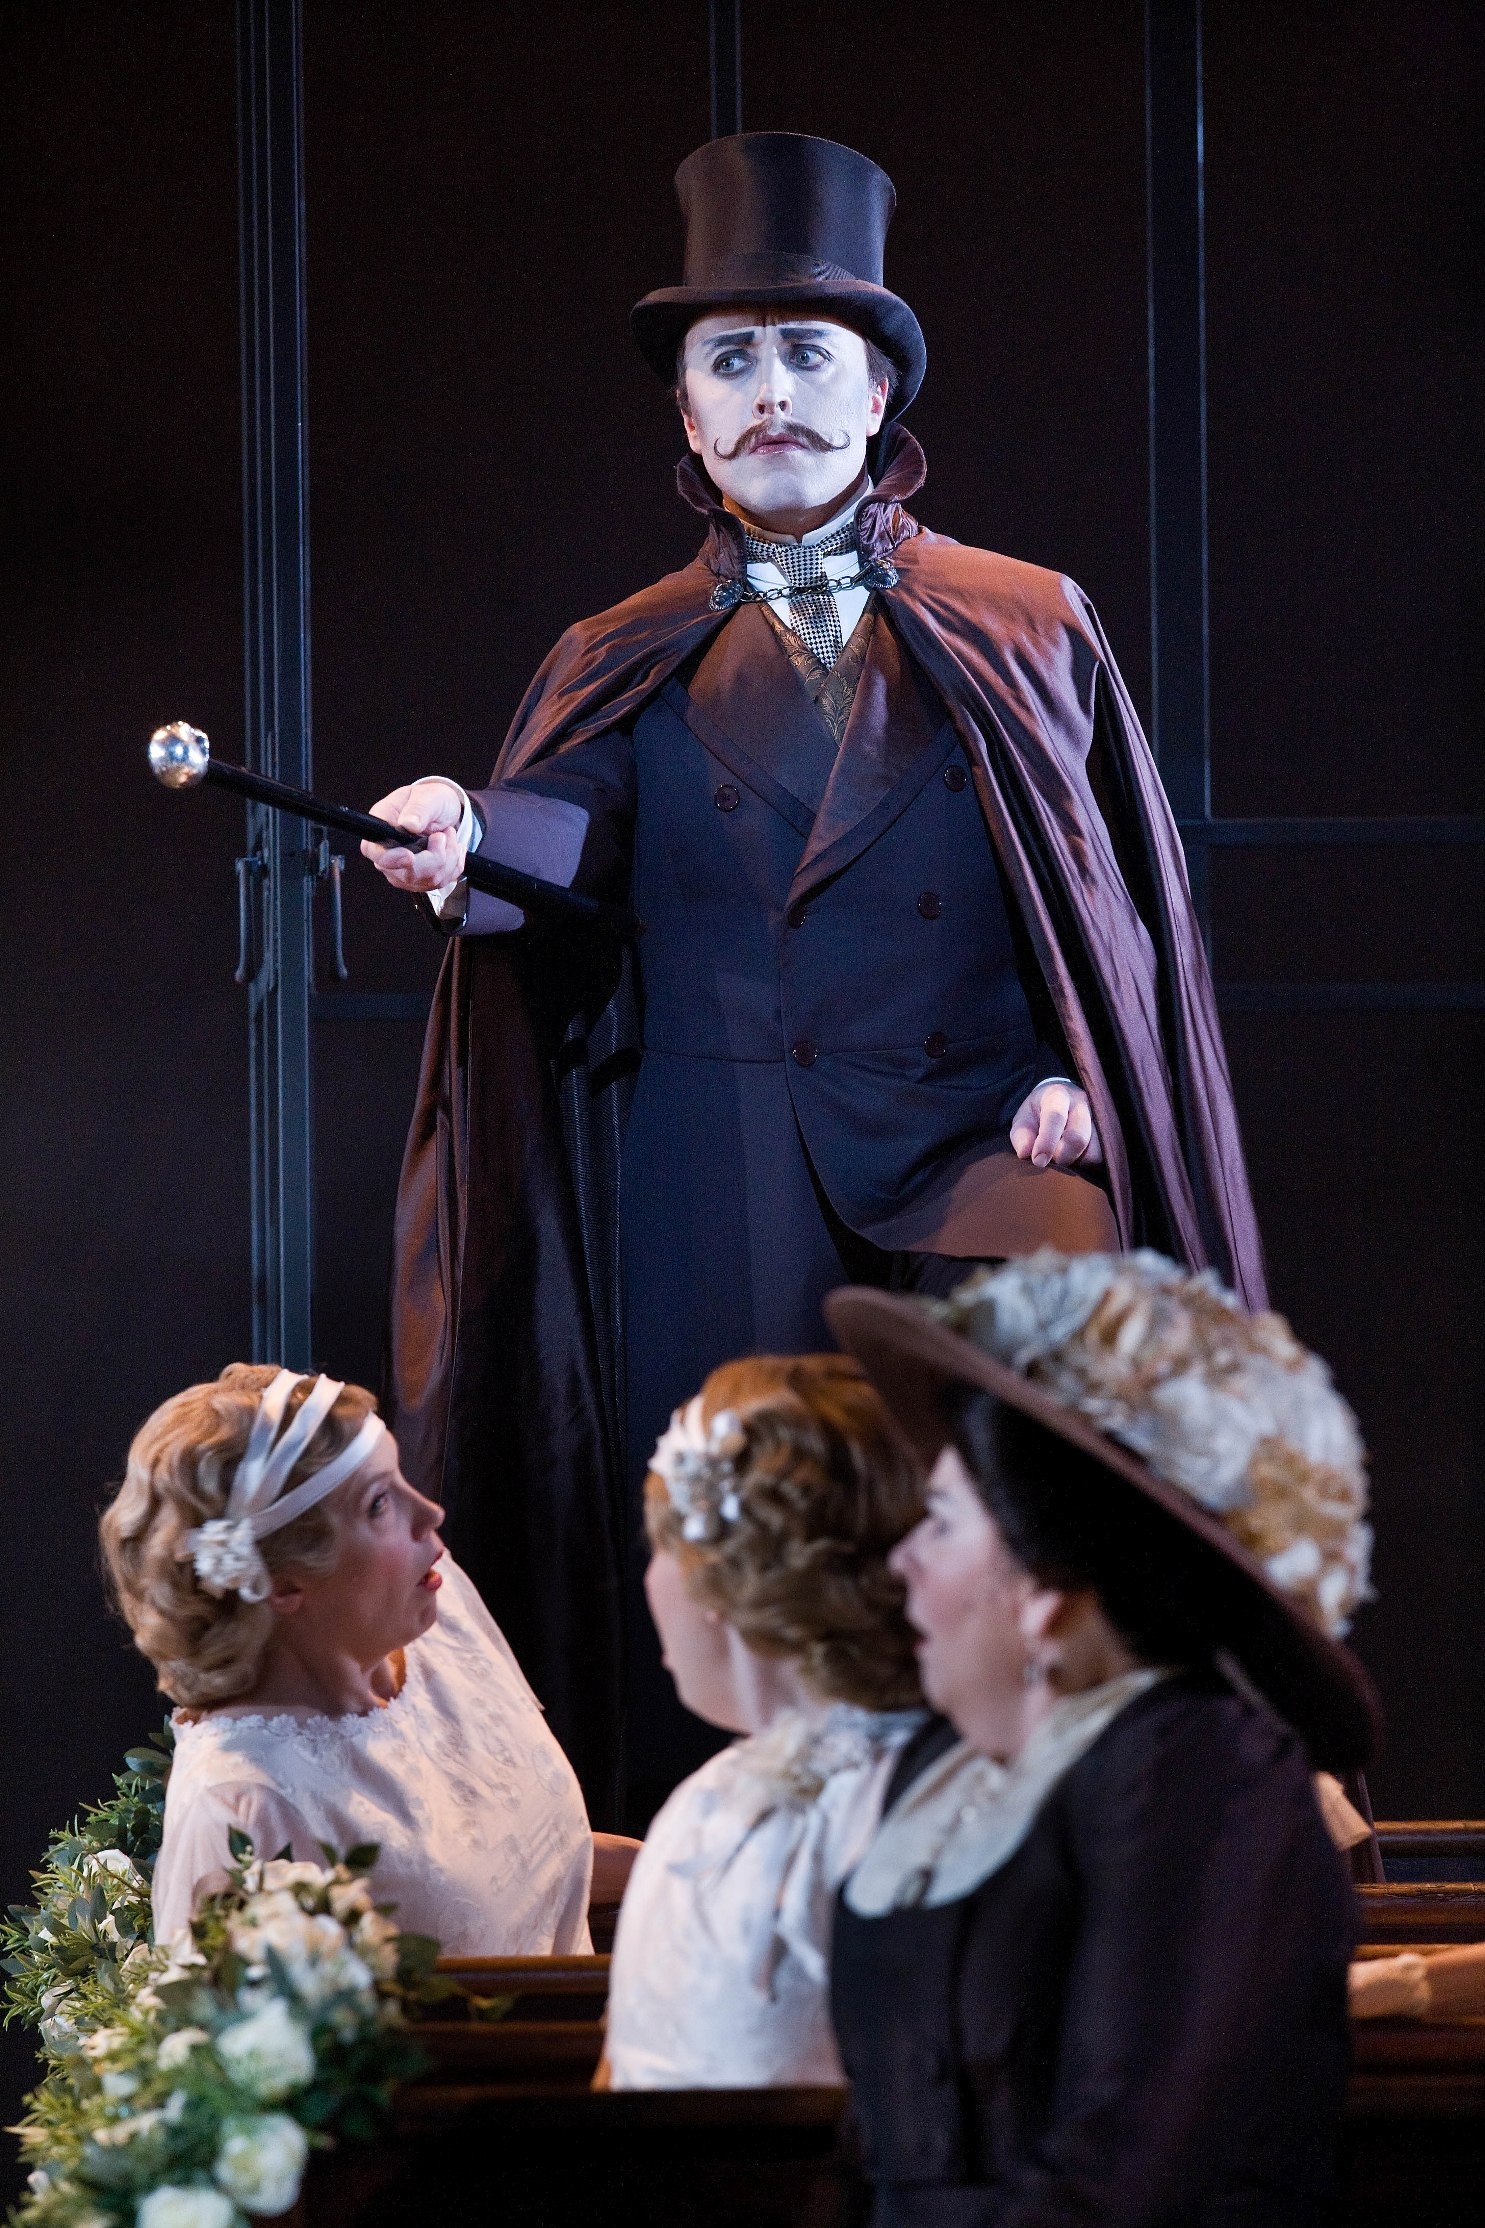 Richard Burkhard as Sir Despard Murgatroyd in Opera North's Ruddigore